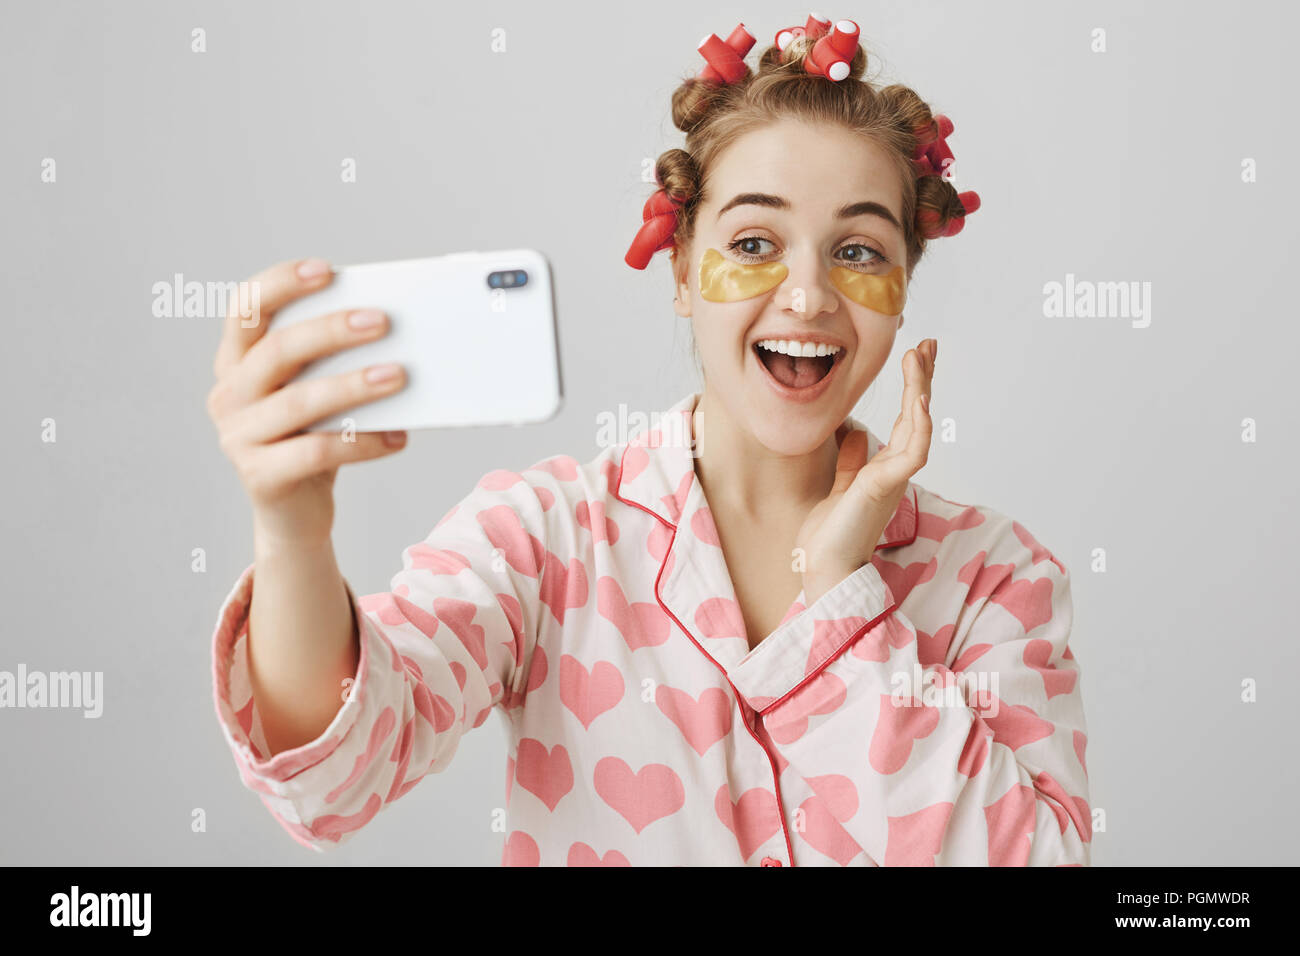 Playful good-looking girl at home making beauty procedures, wearing hair-curlers, nightwear and eye patch mask, smiling while taking selfie or recording video via smartphone, over gray background. - Stock Image